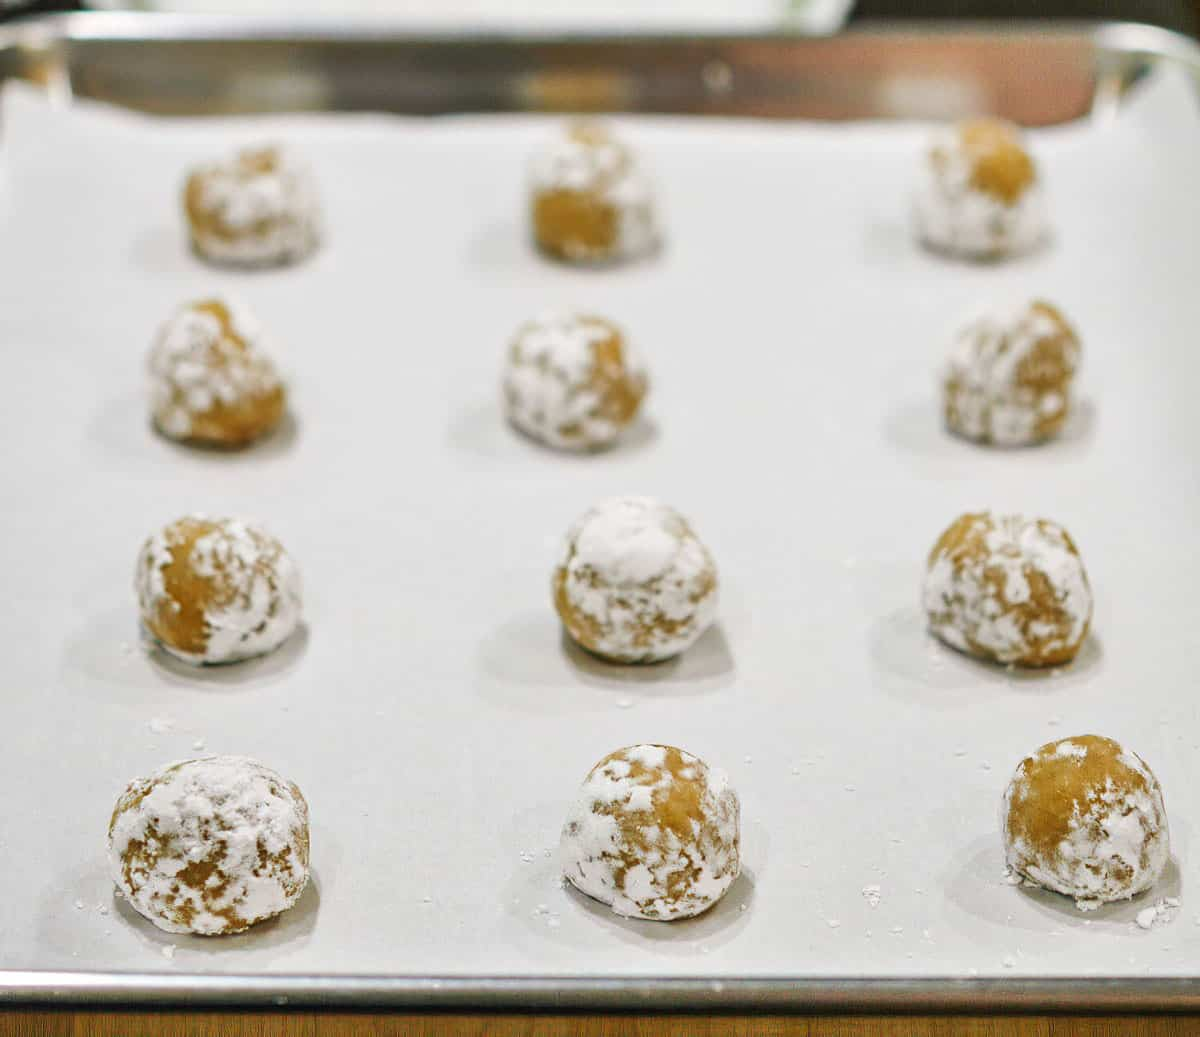 Brown butter crinkle cookie dough after being rolled in powder sugar and placed on a cookie sheet pan.